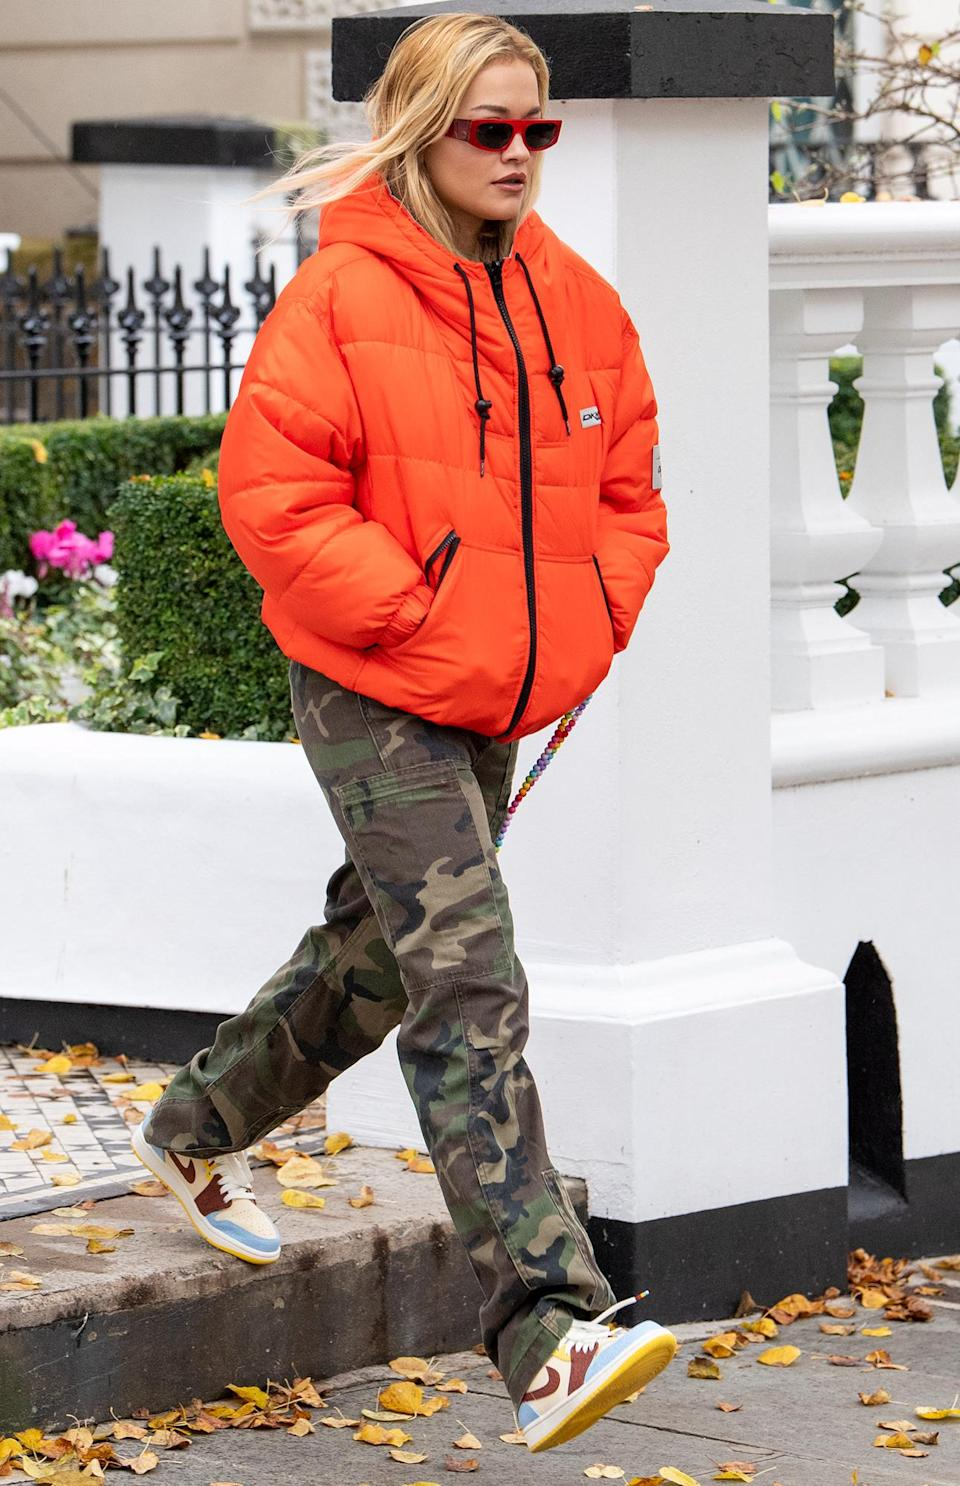 <p>Rita Ora wears a bright orange puffer coat and camo pants while leaving her home in London on Monday.</p>